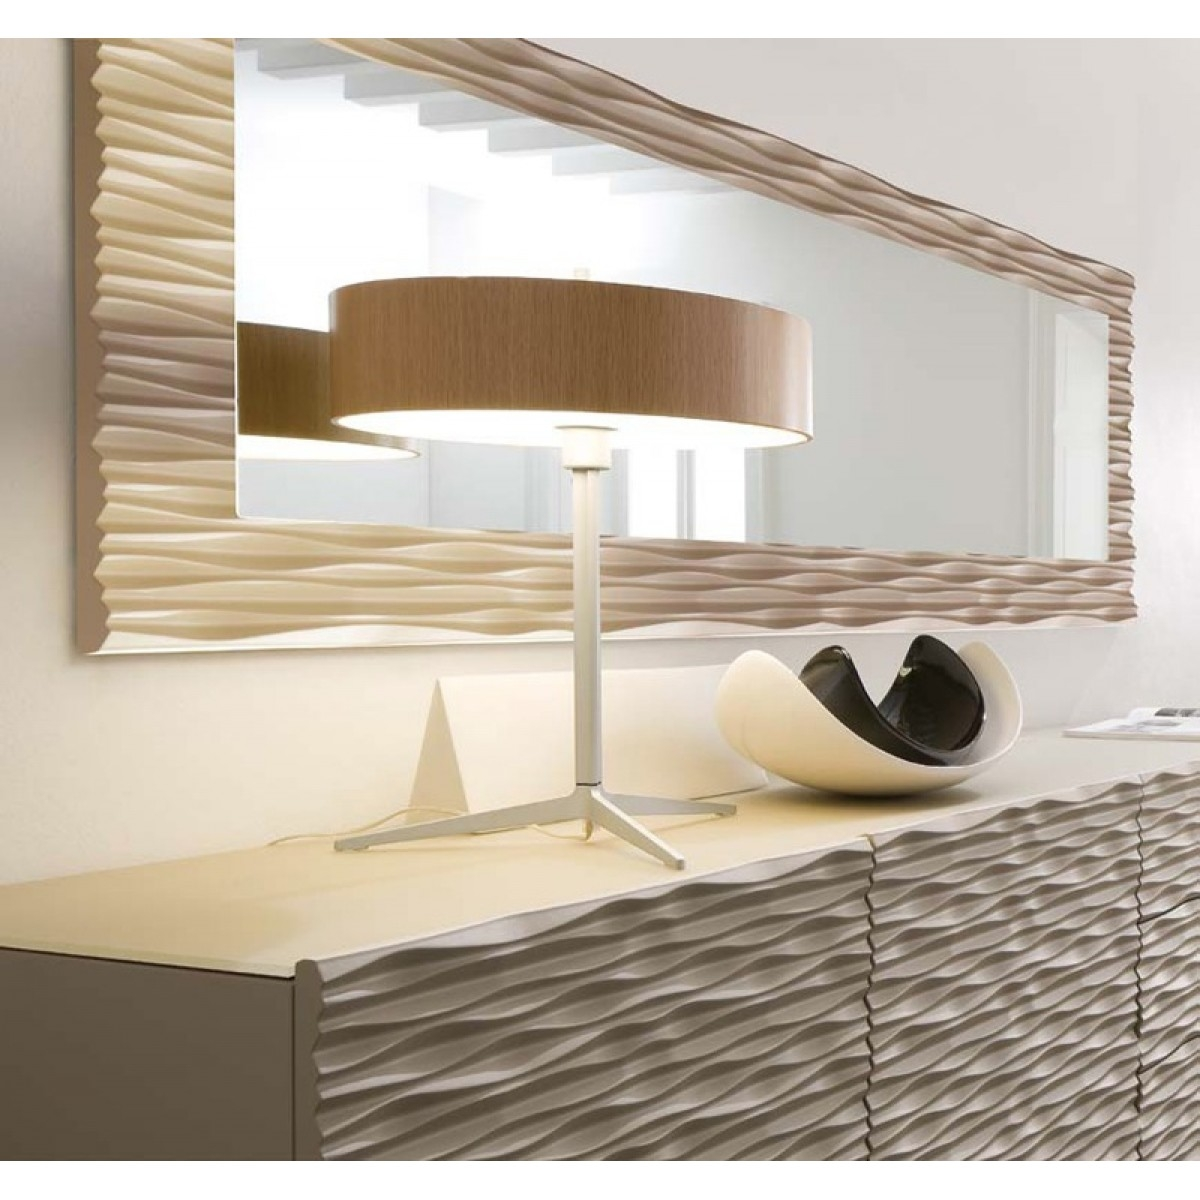 Designer Wall Mirrors Contemporary Wall Mirrors Decorative Large Within Contemporary Wall Mirrors (Image 10 of 15)